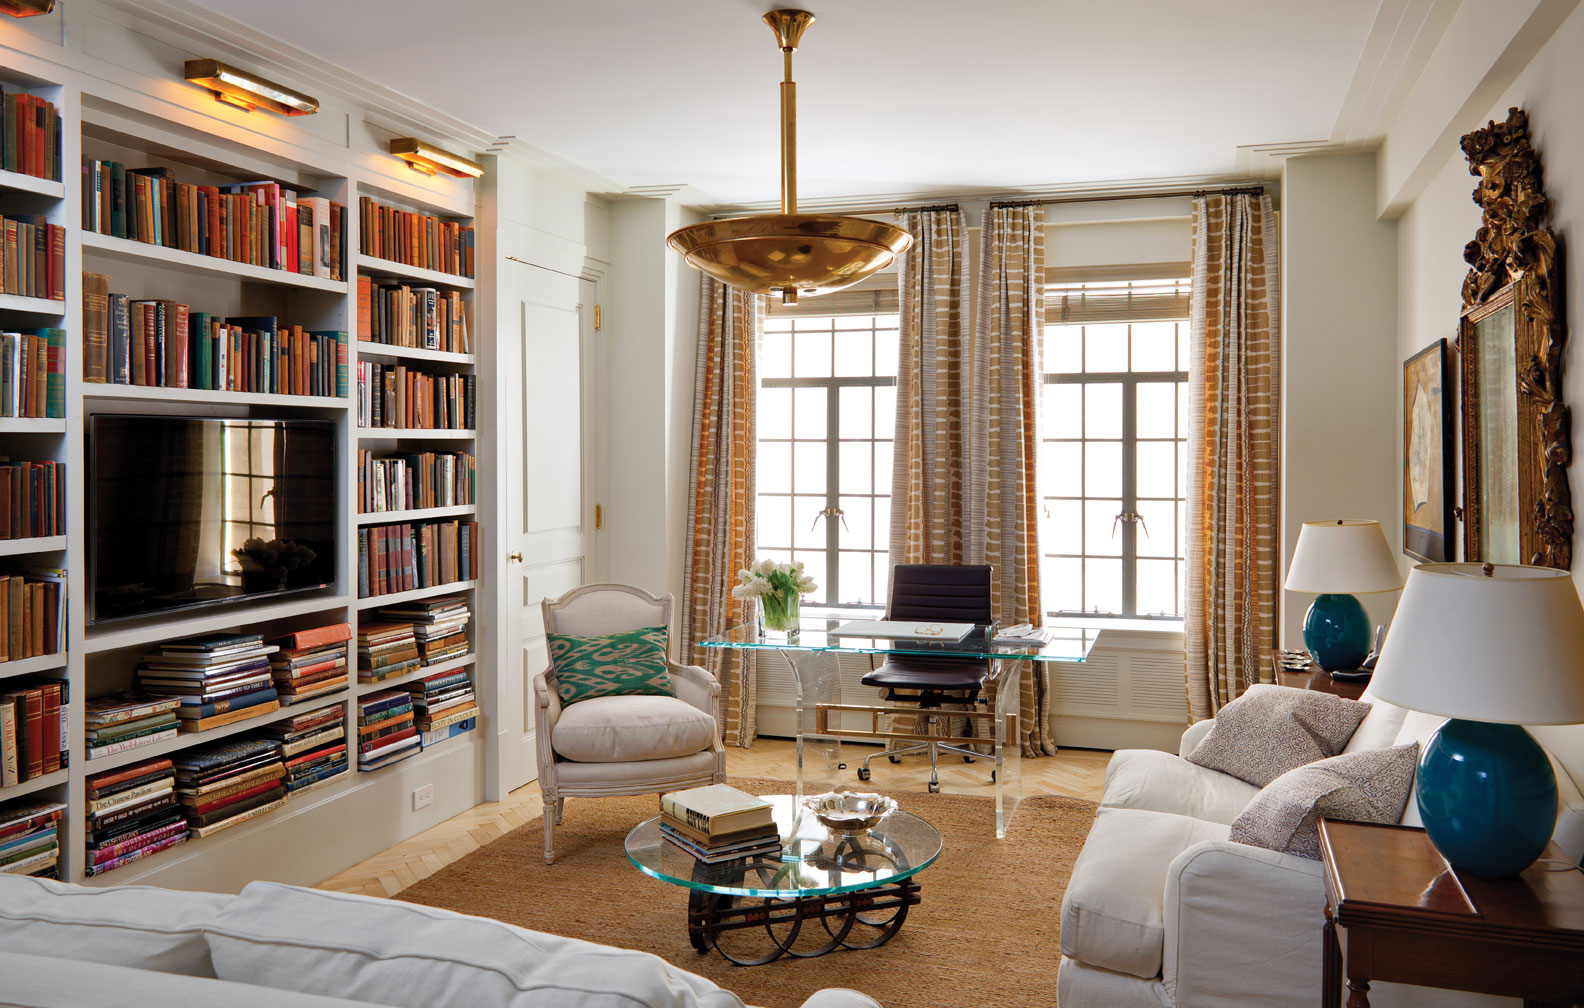 House Tour A Mix Of Old And New On The Upper West Side Apartment Therapy